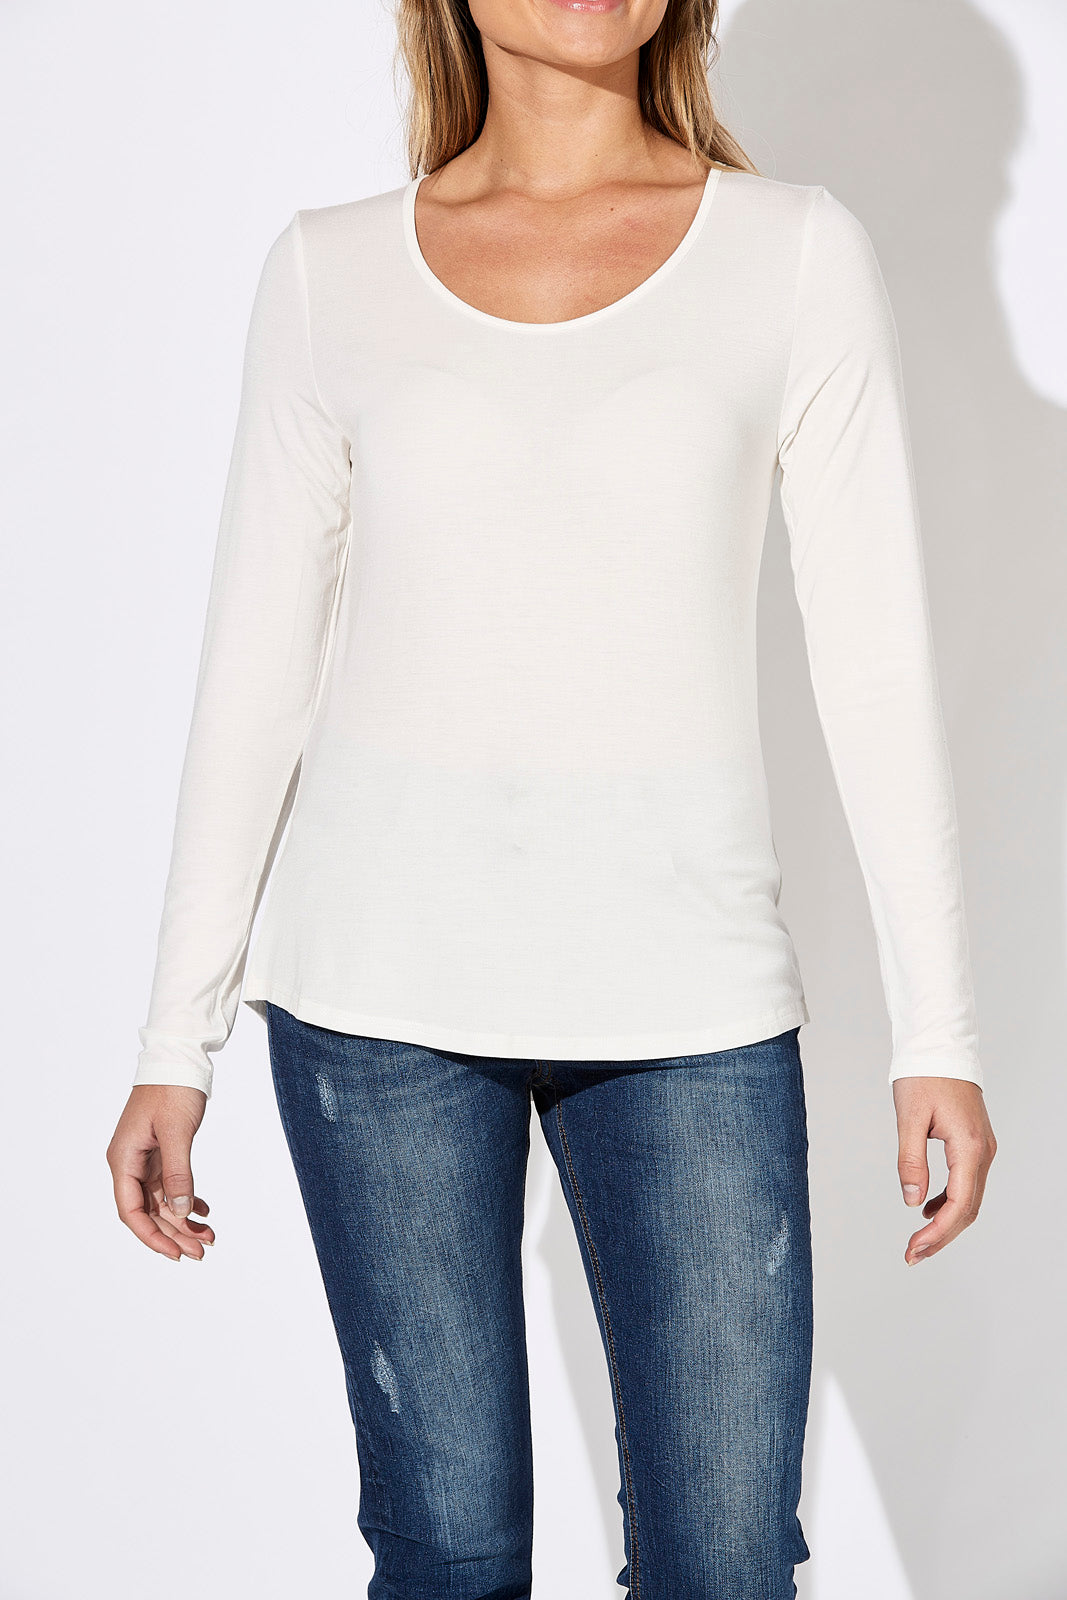 Basic Long Sleeve - White - eb&ive Clothing - Basic